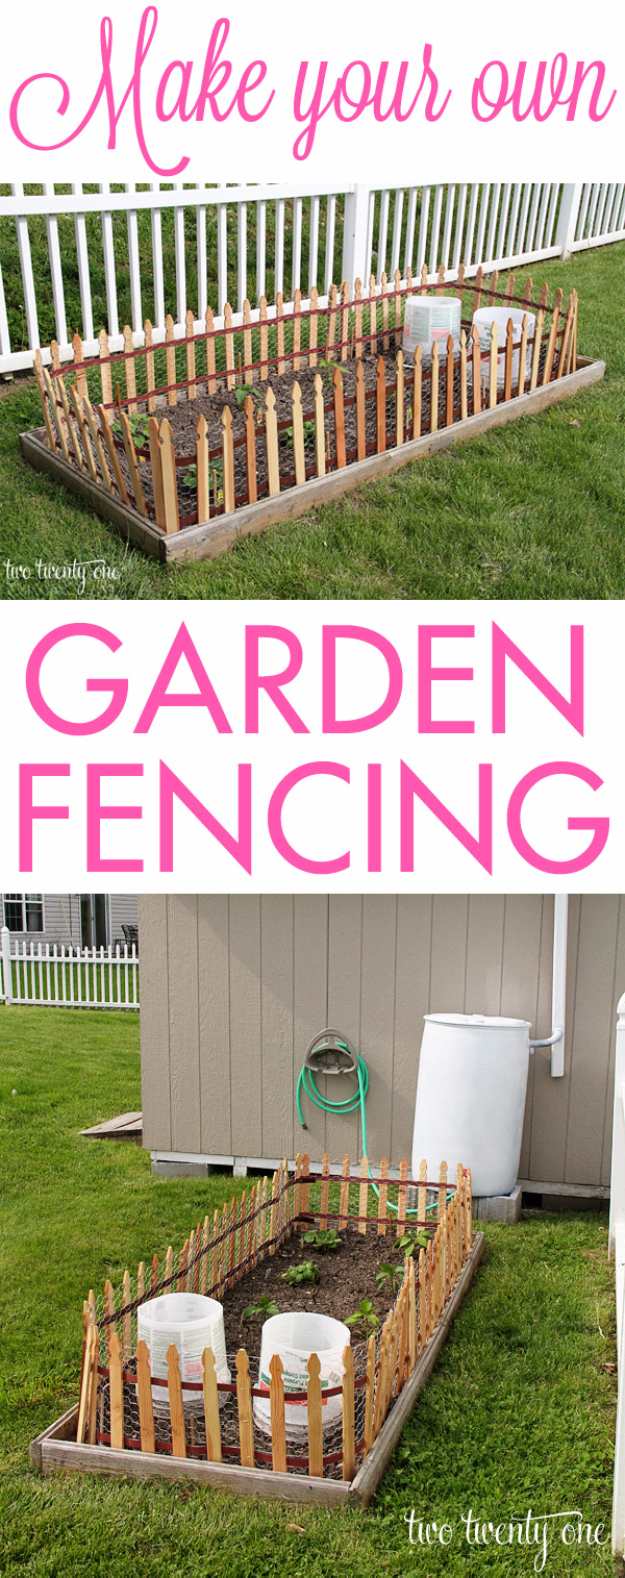 DIY Fences and Gates - Simple Garden Fence - How To Make Easy Fence and Gate Project for Backyard and Home - Step by Step Tutorial and Ideas for Painting, Updating and Making Fences and DIY Gate - Cool Outdoors and Yard Projects http://diyjoy.com/diy-fences-gates